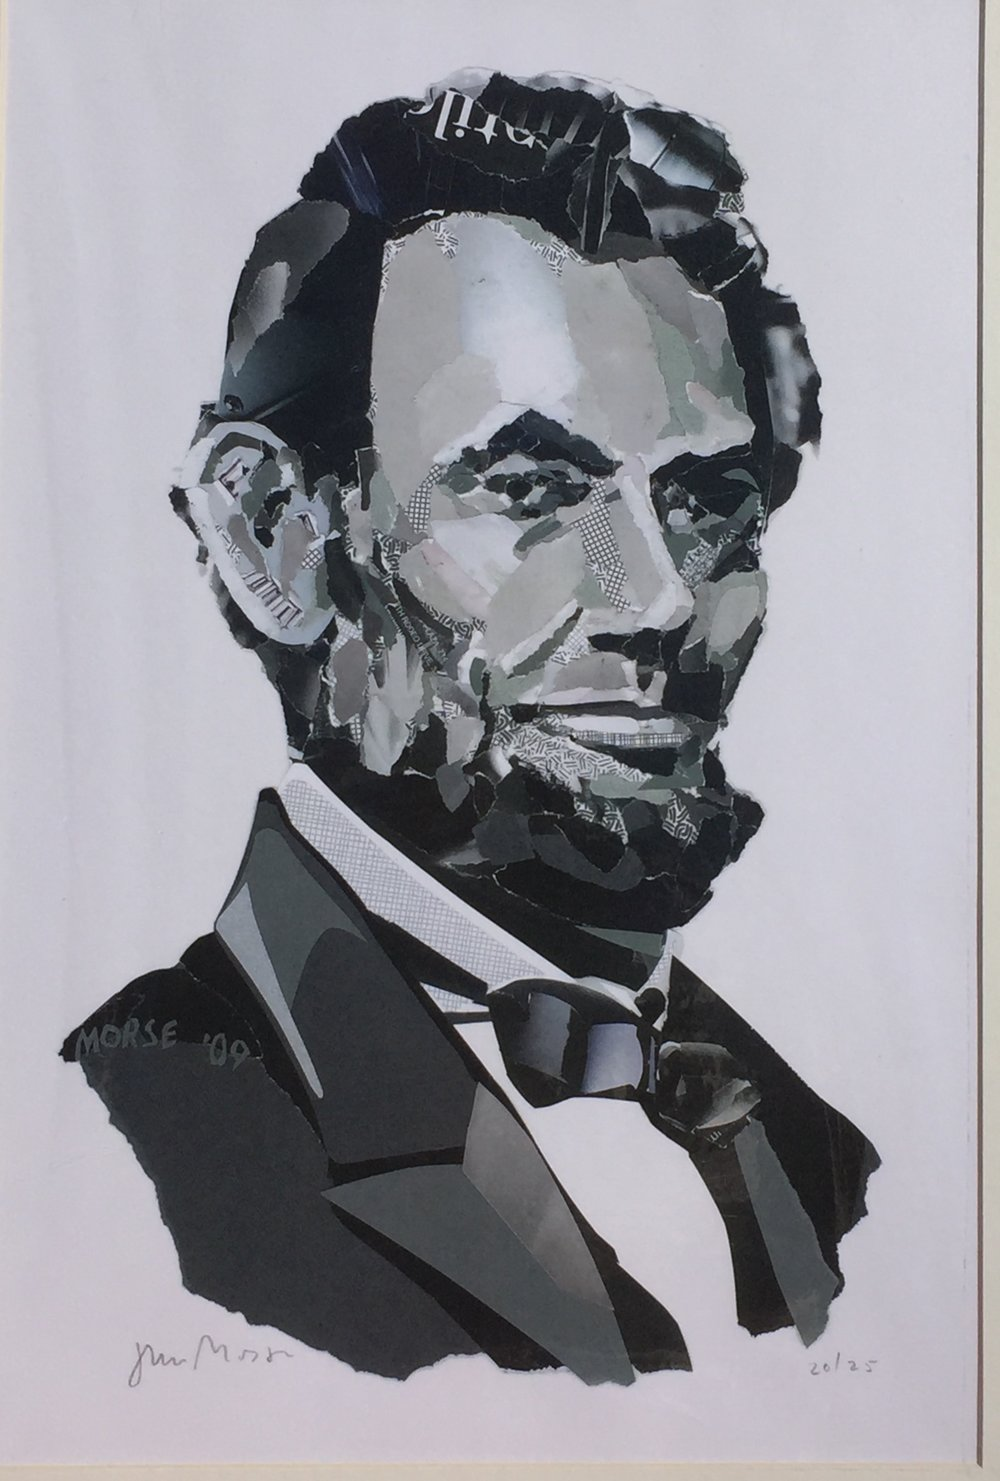 JOHN MORSE Abraham Lincoln (black & white) found paper collage 11 x 17 inches JMO 006